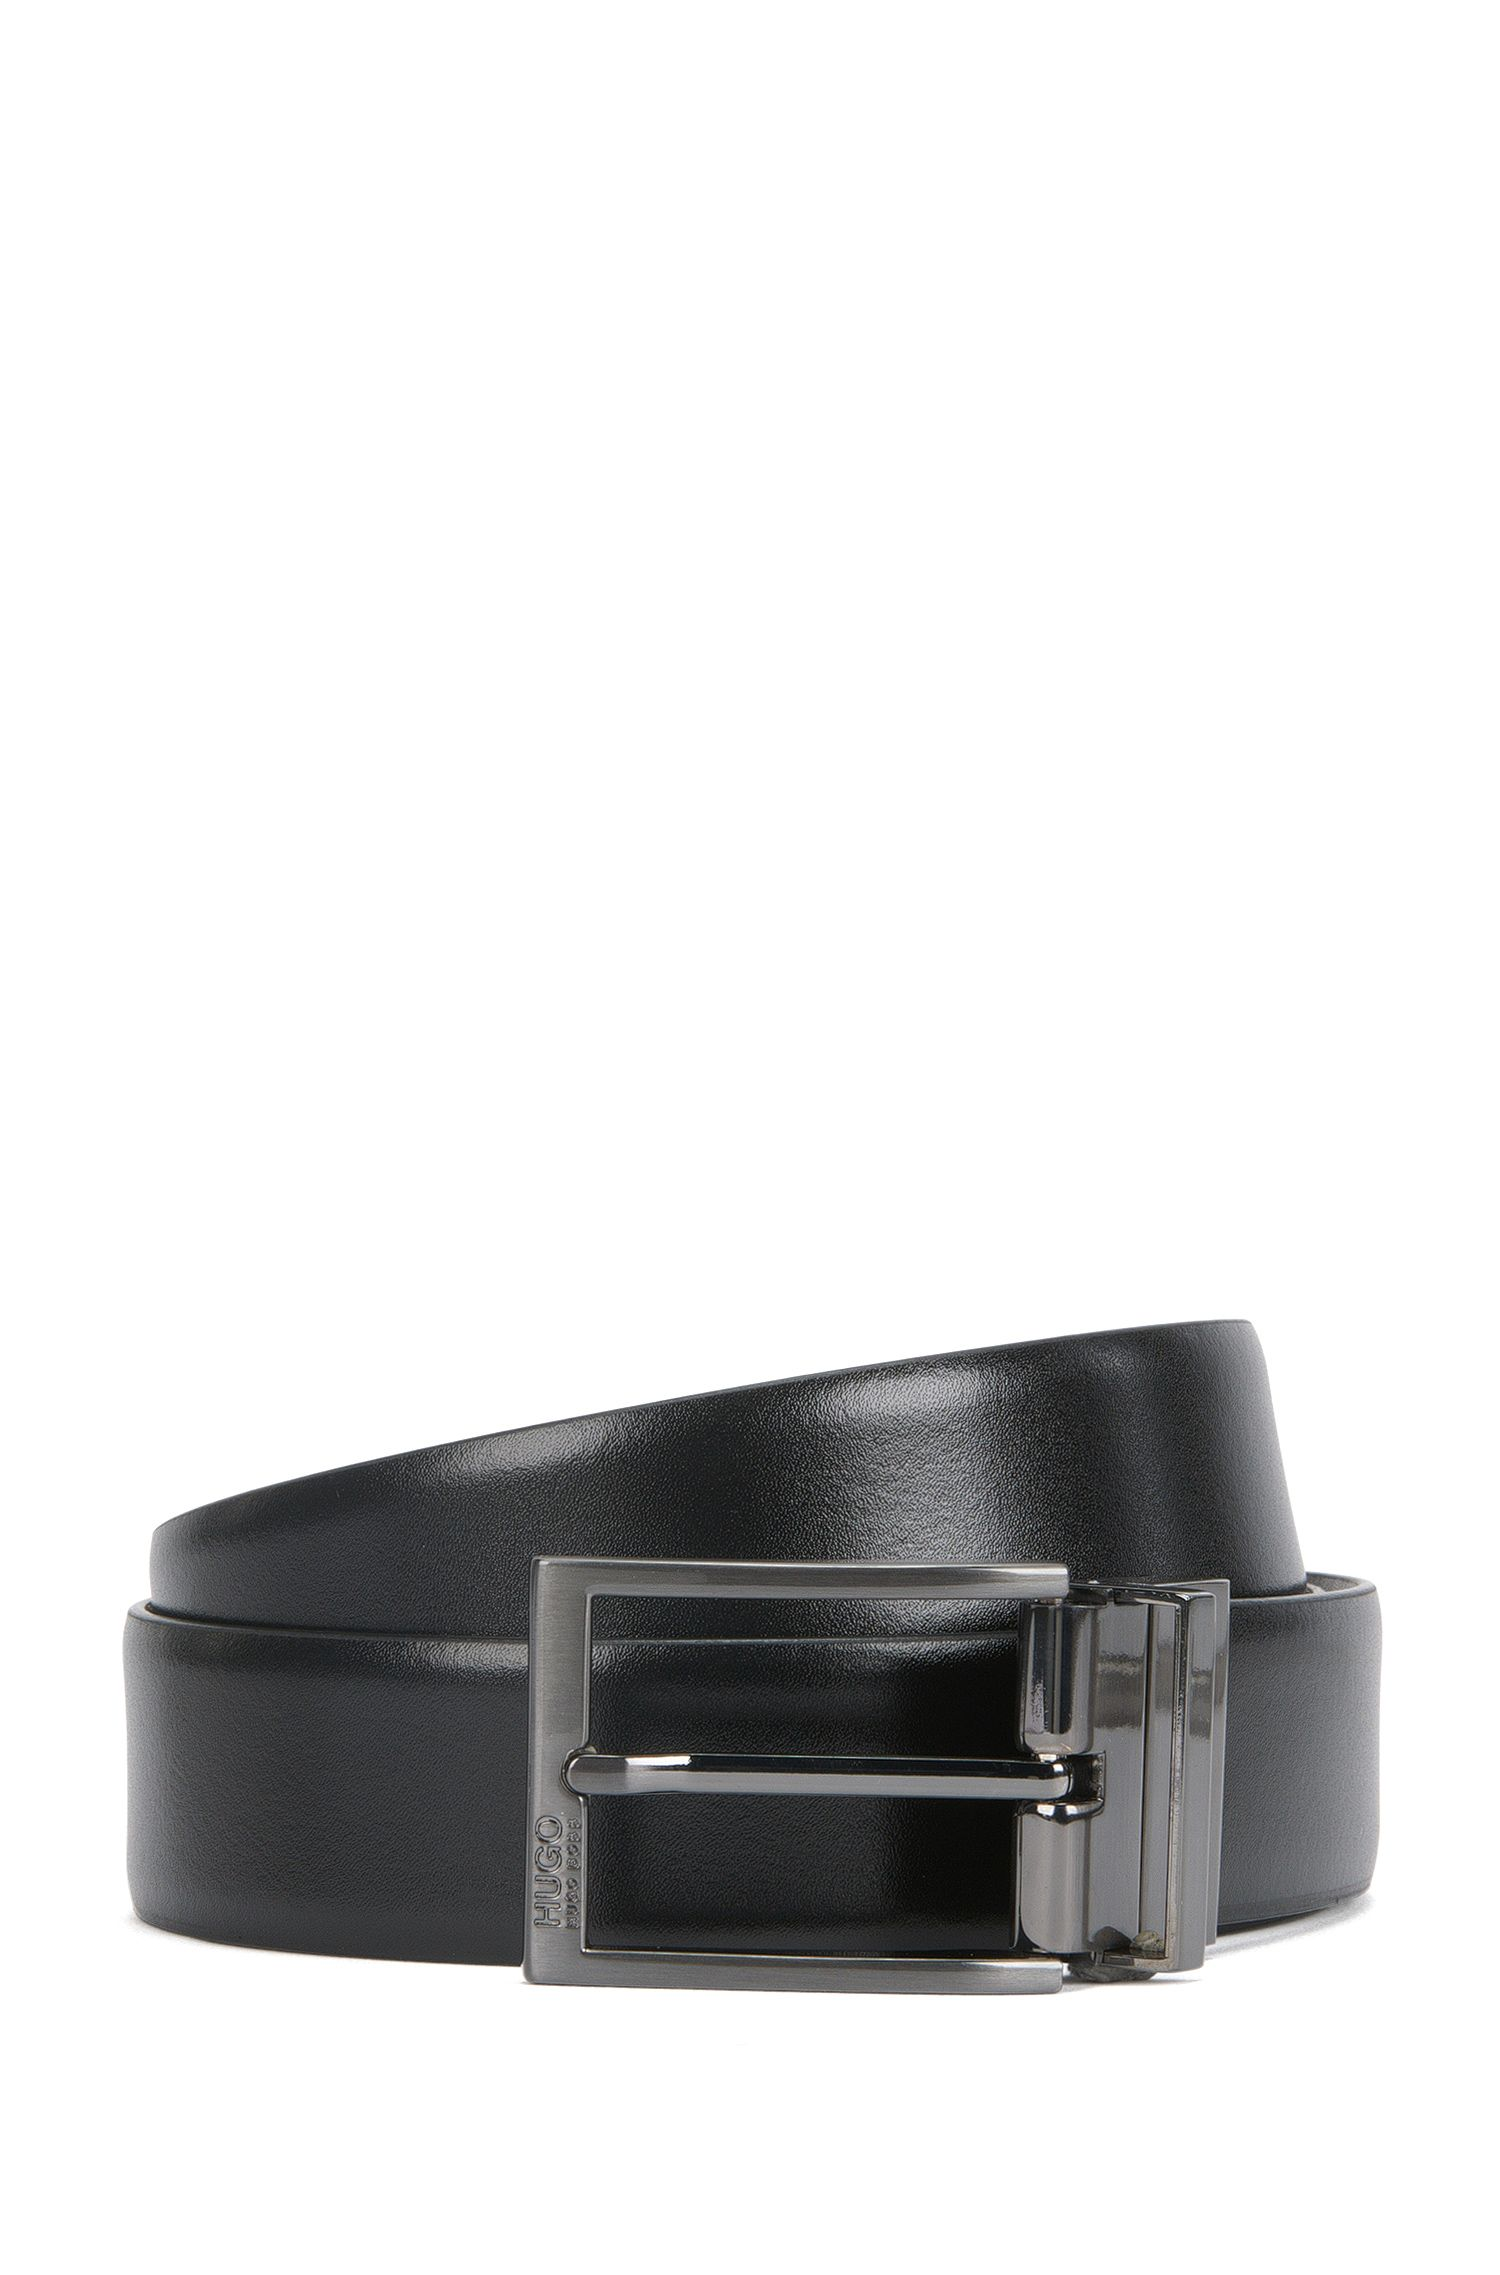 Reversible leather belt with brushed gunmetal hardware